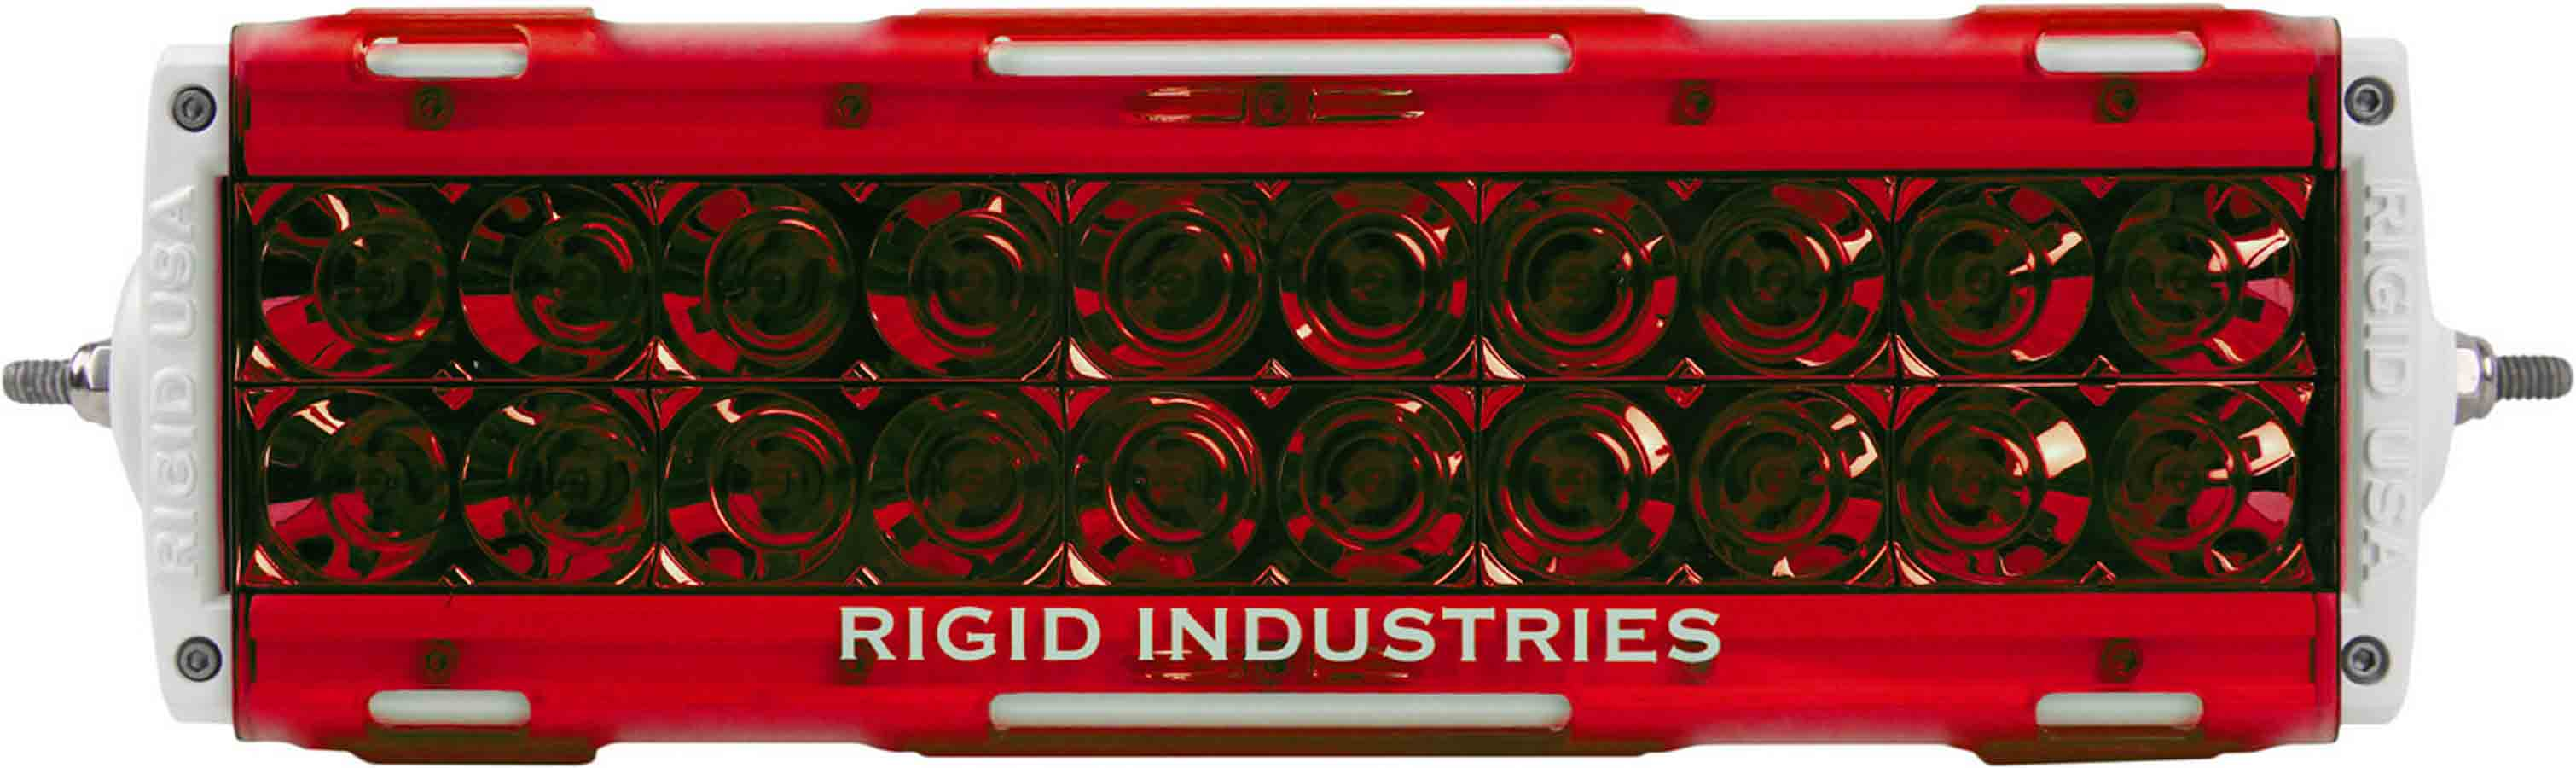 LED Light Cover Each 10 in E Series Red